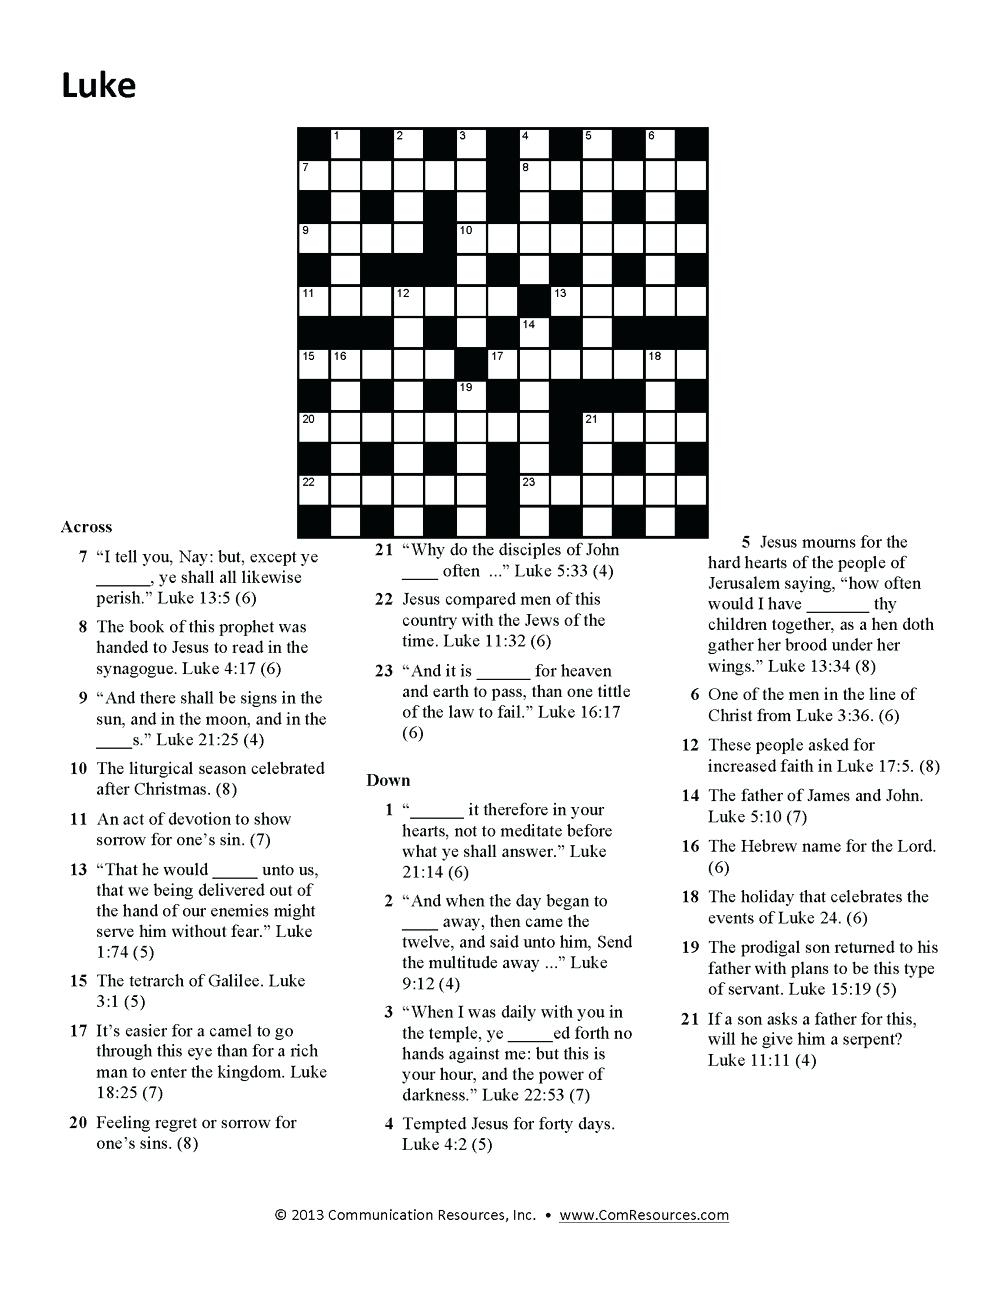 Bible Crossword Puzzles Printable - Masterprintable - Printable Holiday Crossword Puzzles For Adults With Answers